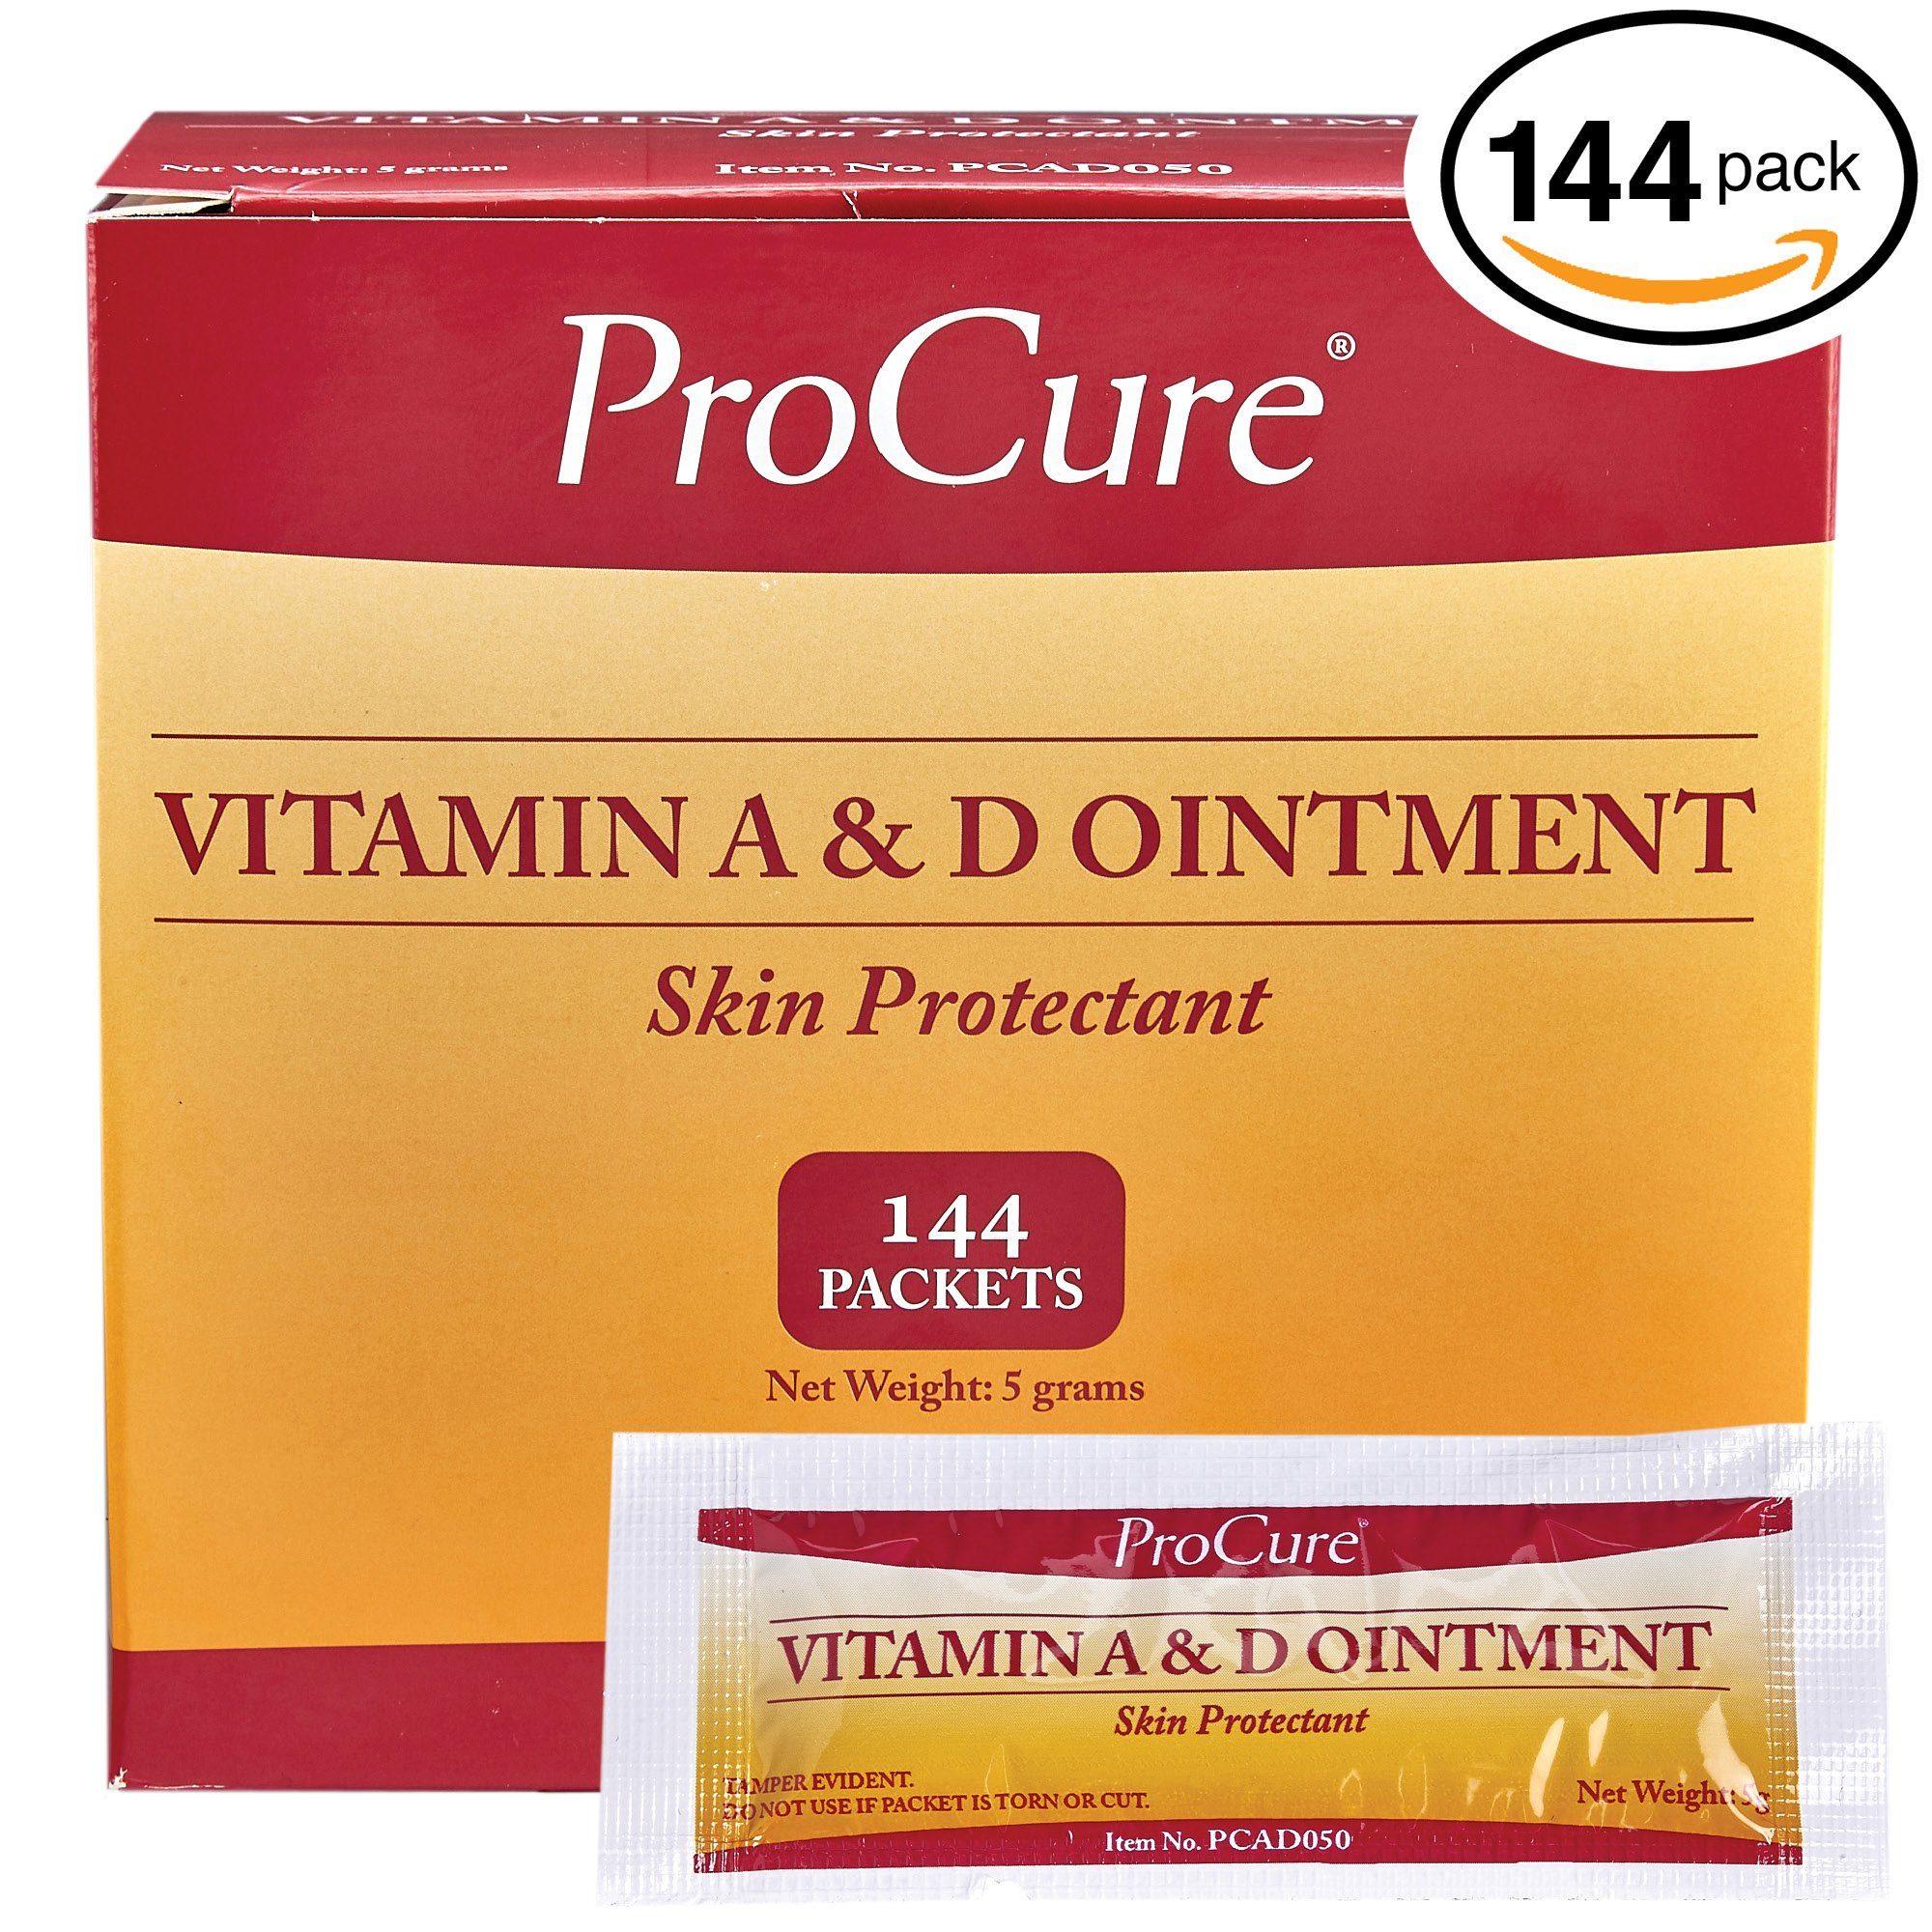 ProCure Vitamin A and D Ointment 5g Packets, 144 Count - Treats and Prevents Diaper Rash - Lanolin and Petrolatum Skin Protectant Formula Seals in Wetness - for Cuts, Dry Or Chaffed Skin